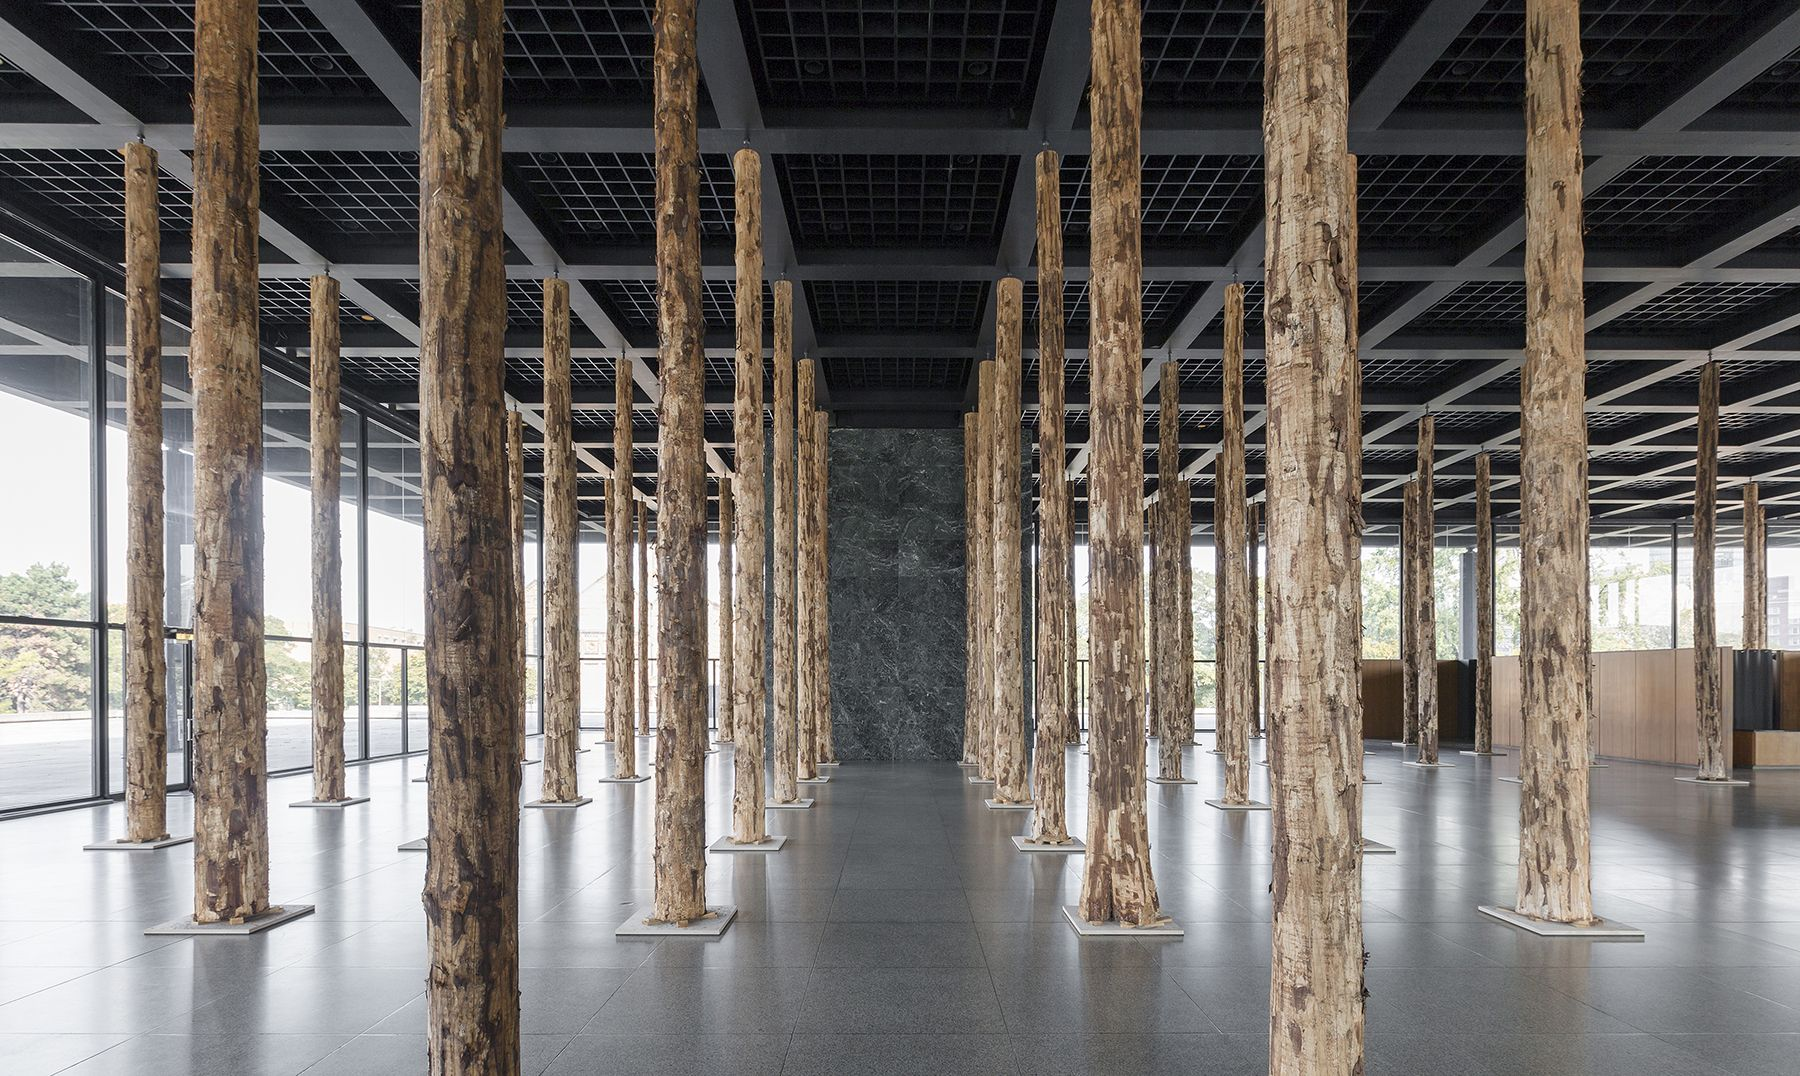 """Mies van der Rohe's Neue Nationalgalerie in Berlin gets a new """"structure"""" by David Chipperfield - Sticks and Stones, an Intervention using 144 imposing tree trunks, transforming the open glass hall of the museum into a densely filled hall of columns"""